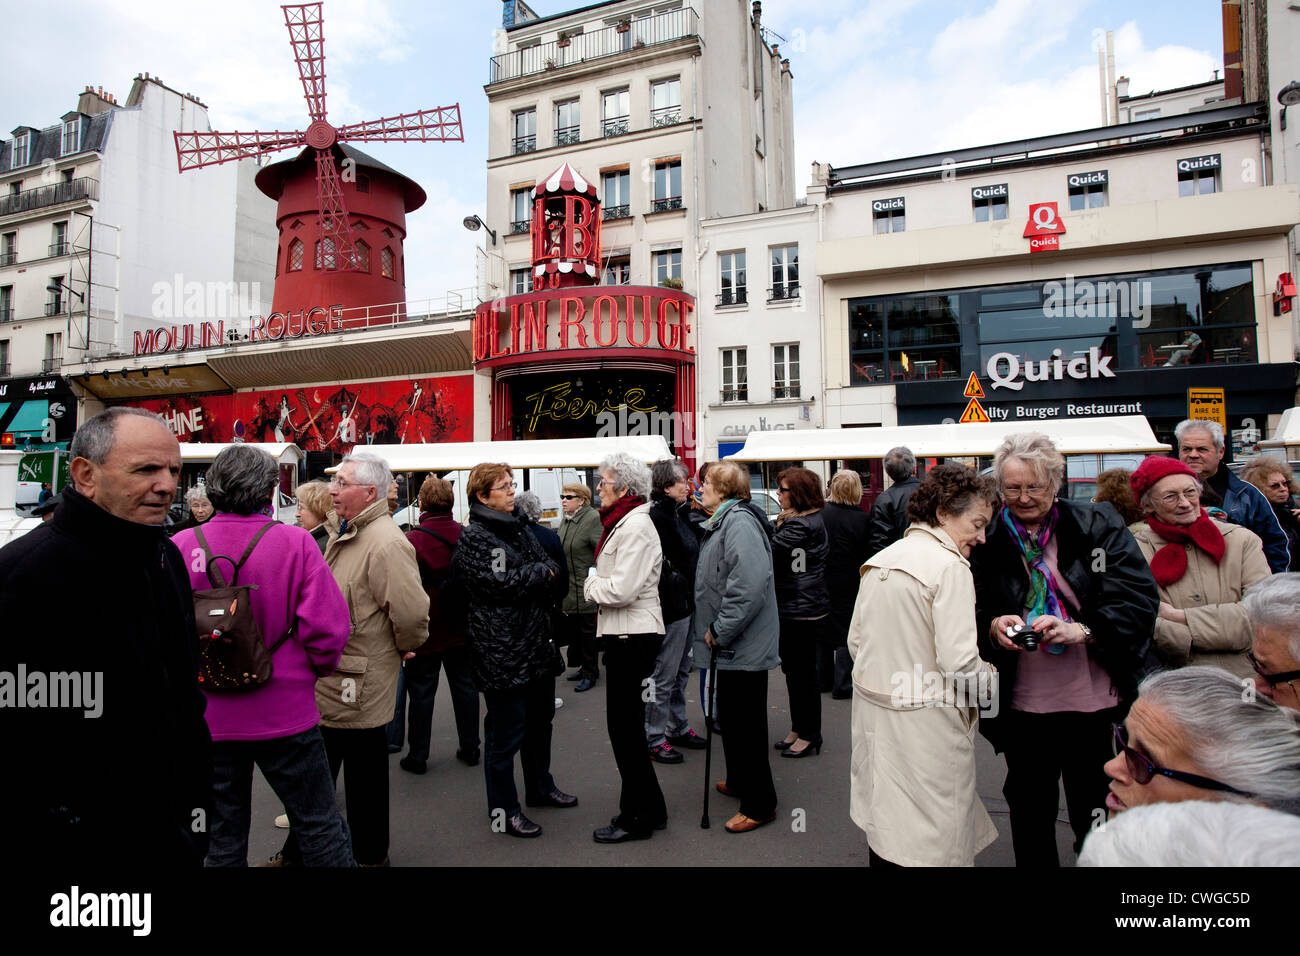 a croud of elderly tourists outside The Moulin Rouge, Paris, France - Stock Image